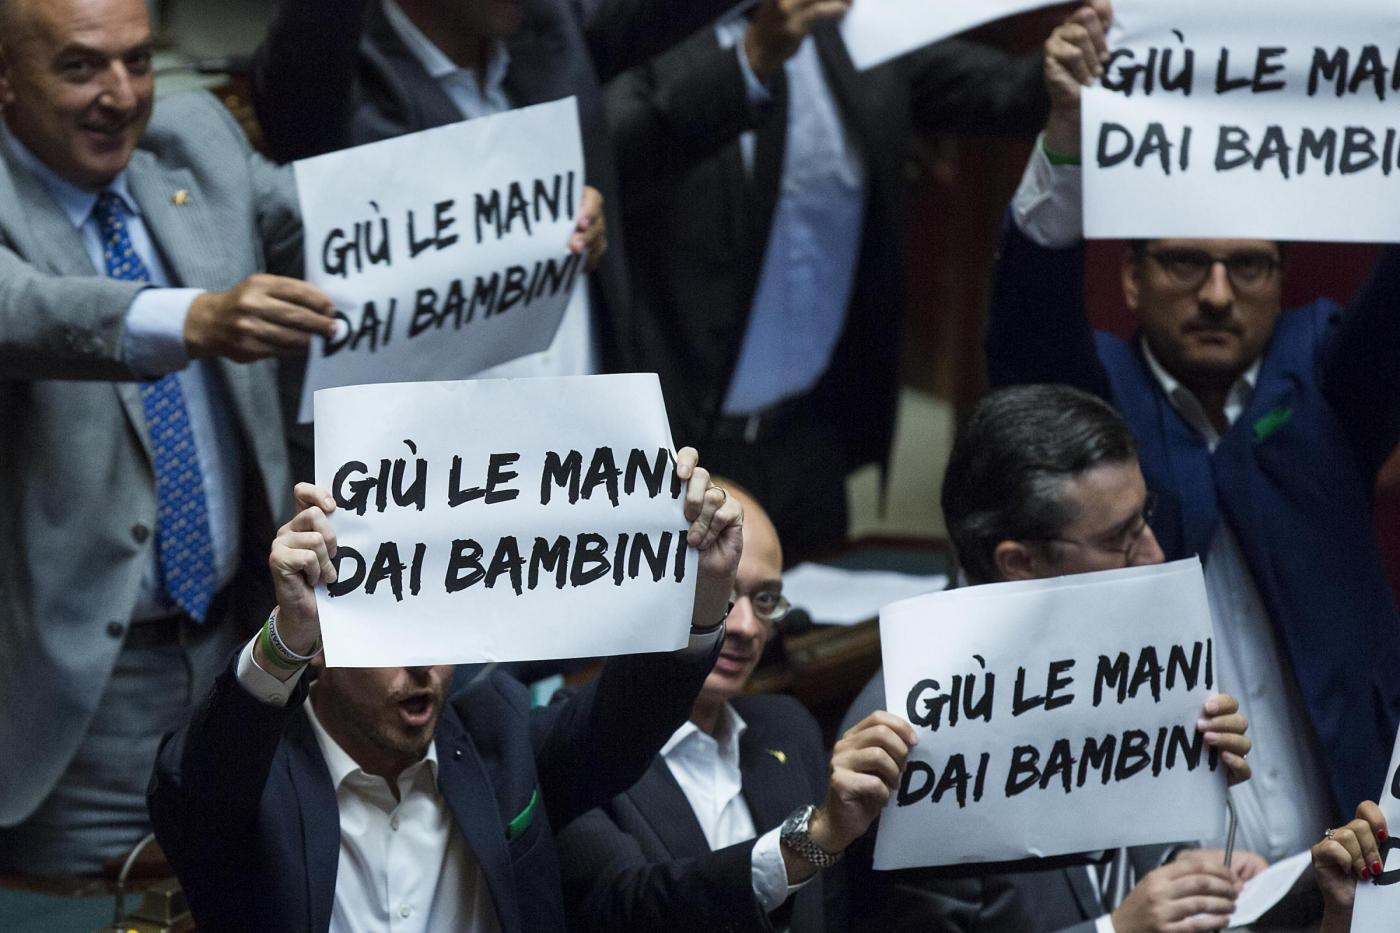 Foto Roberto Monaldo / LaPresse 09-07-2015 Roma Politica Camera dei Deputati - ddl Scuola Nella foto Protesta Lega Nord Photo Roberto Monaldo / LaPresse 09-07-2015 Rome (Italy) Chamber of Deputies - Draft law on school In the photo Protest by Lega Nord